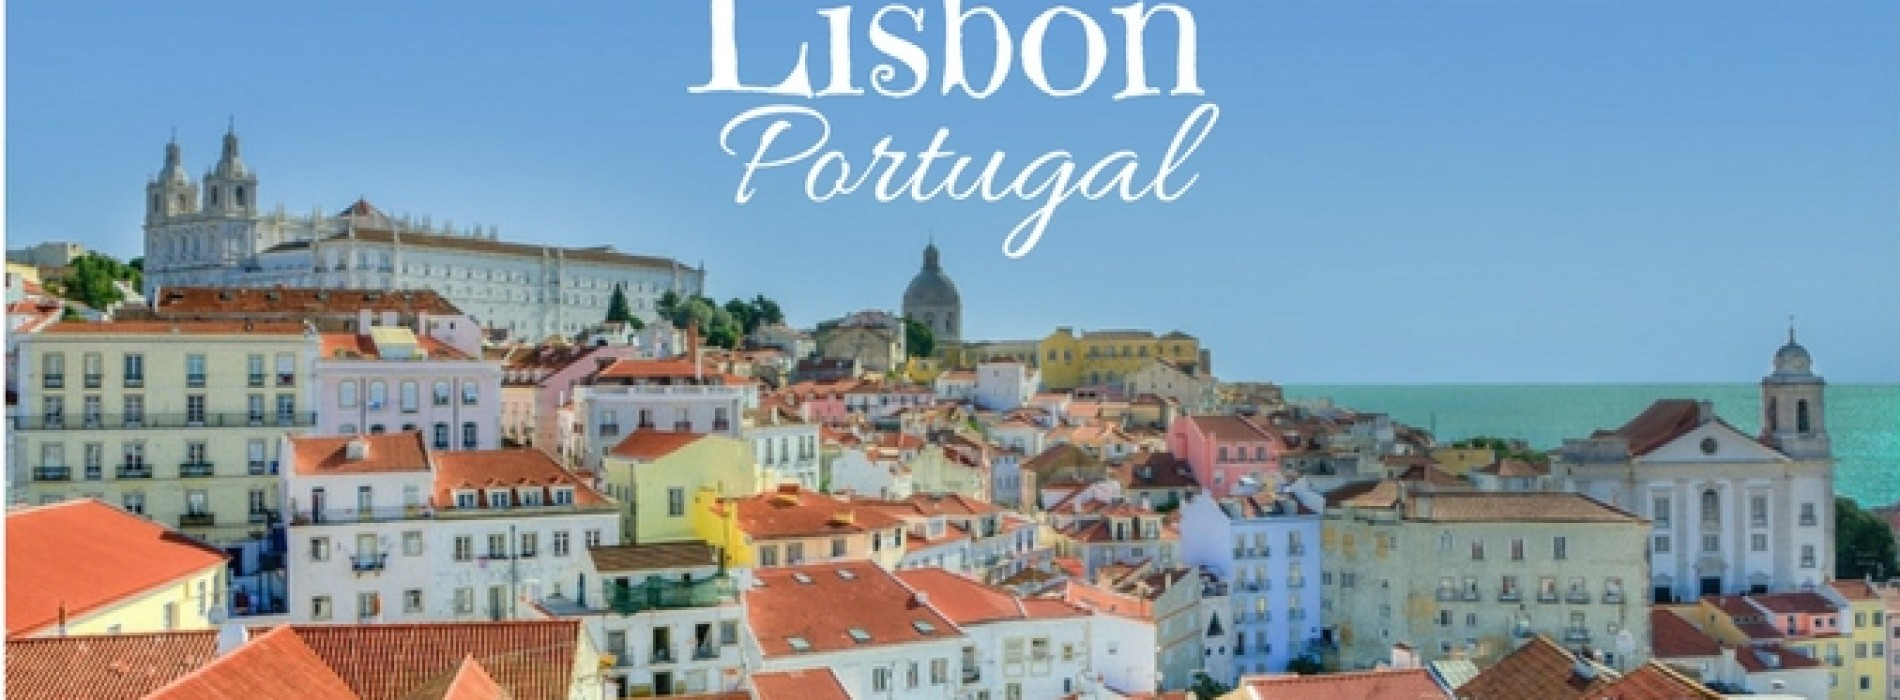 Get ready to be inspired by Lisbon to live your life today